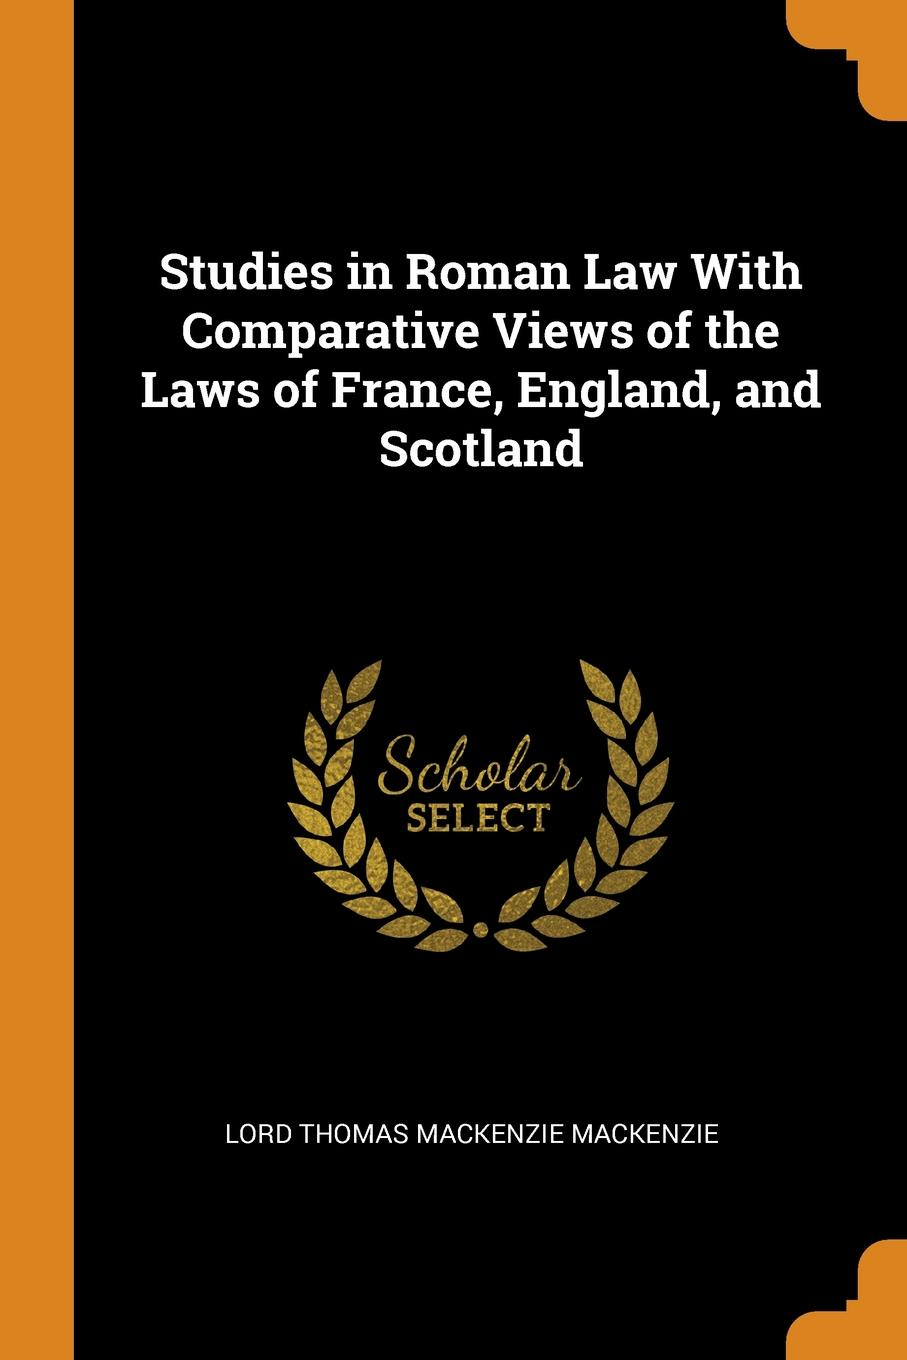 Lord Thomas Mackenzie Mackenzie Studies in Roman Law With Comparative Views of the Laws of France, England, and Scotland studies in roman law with comparative views of the laws of france england and scotland